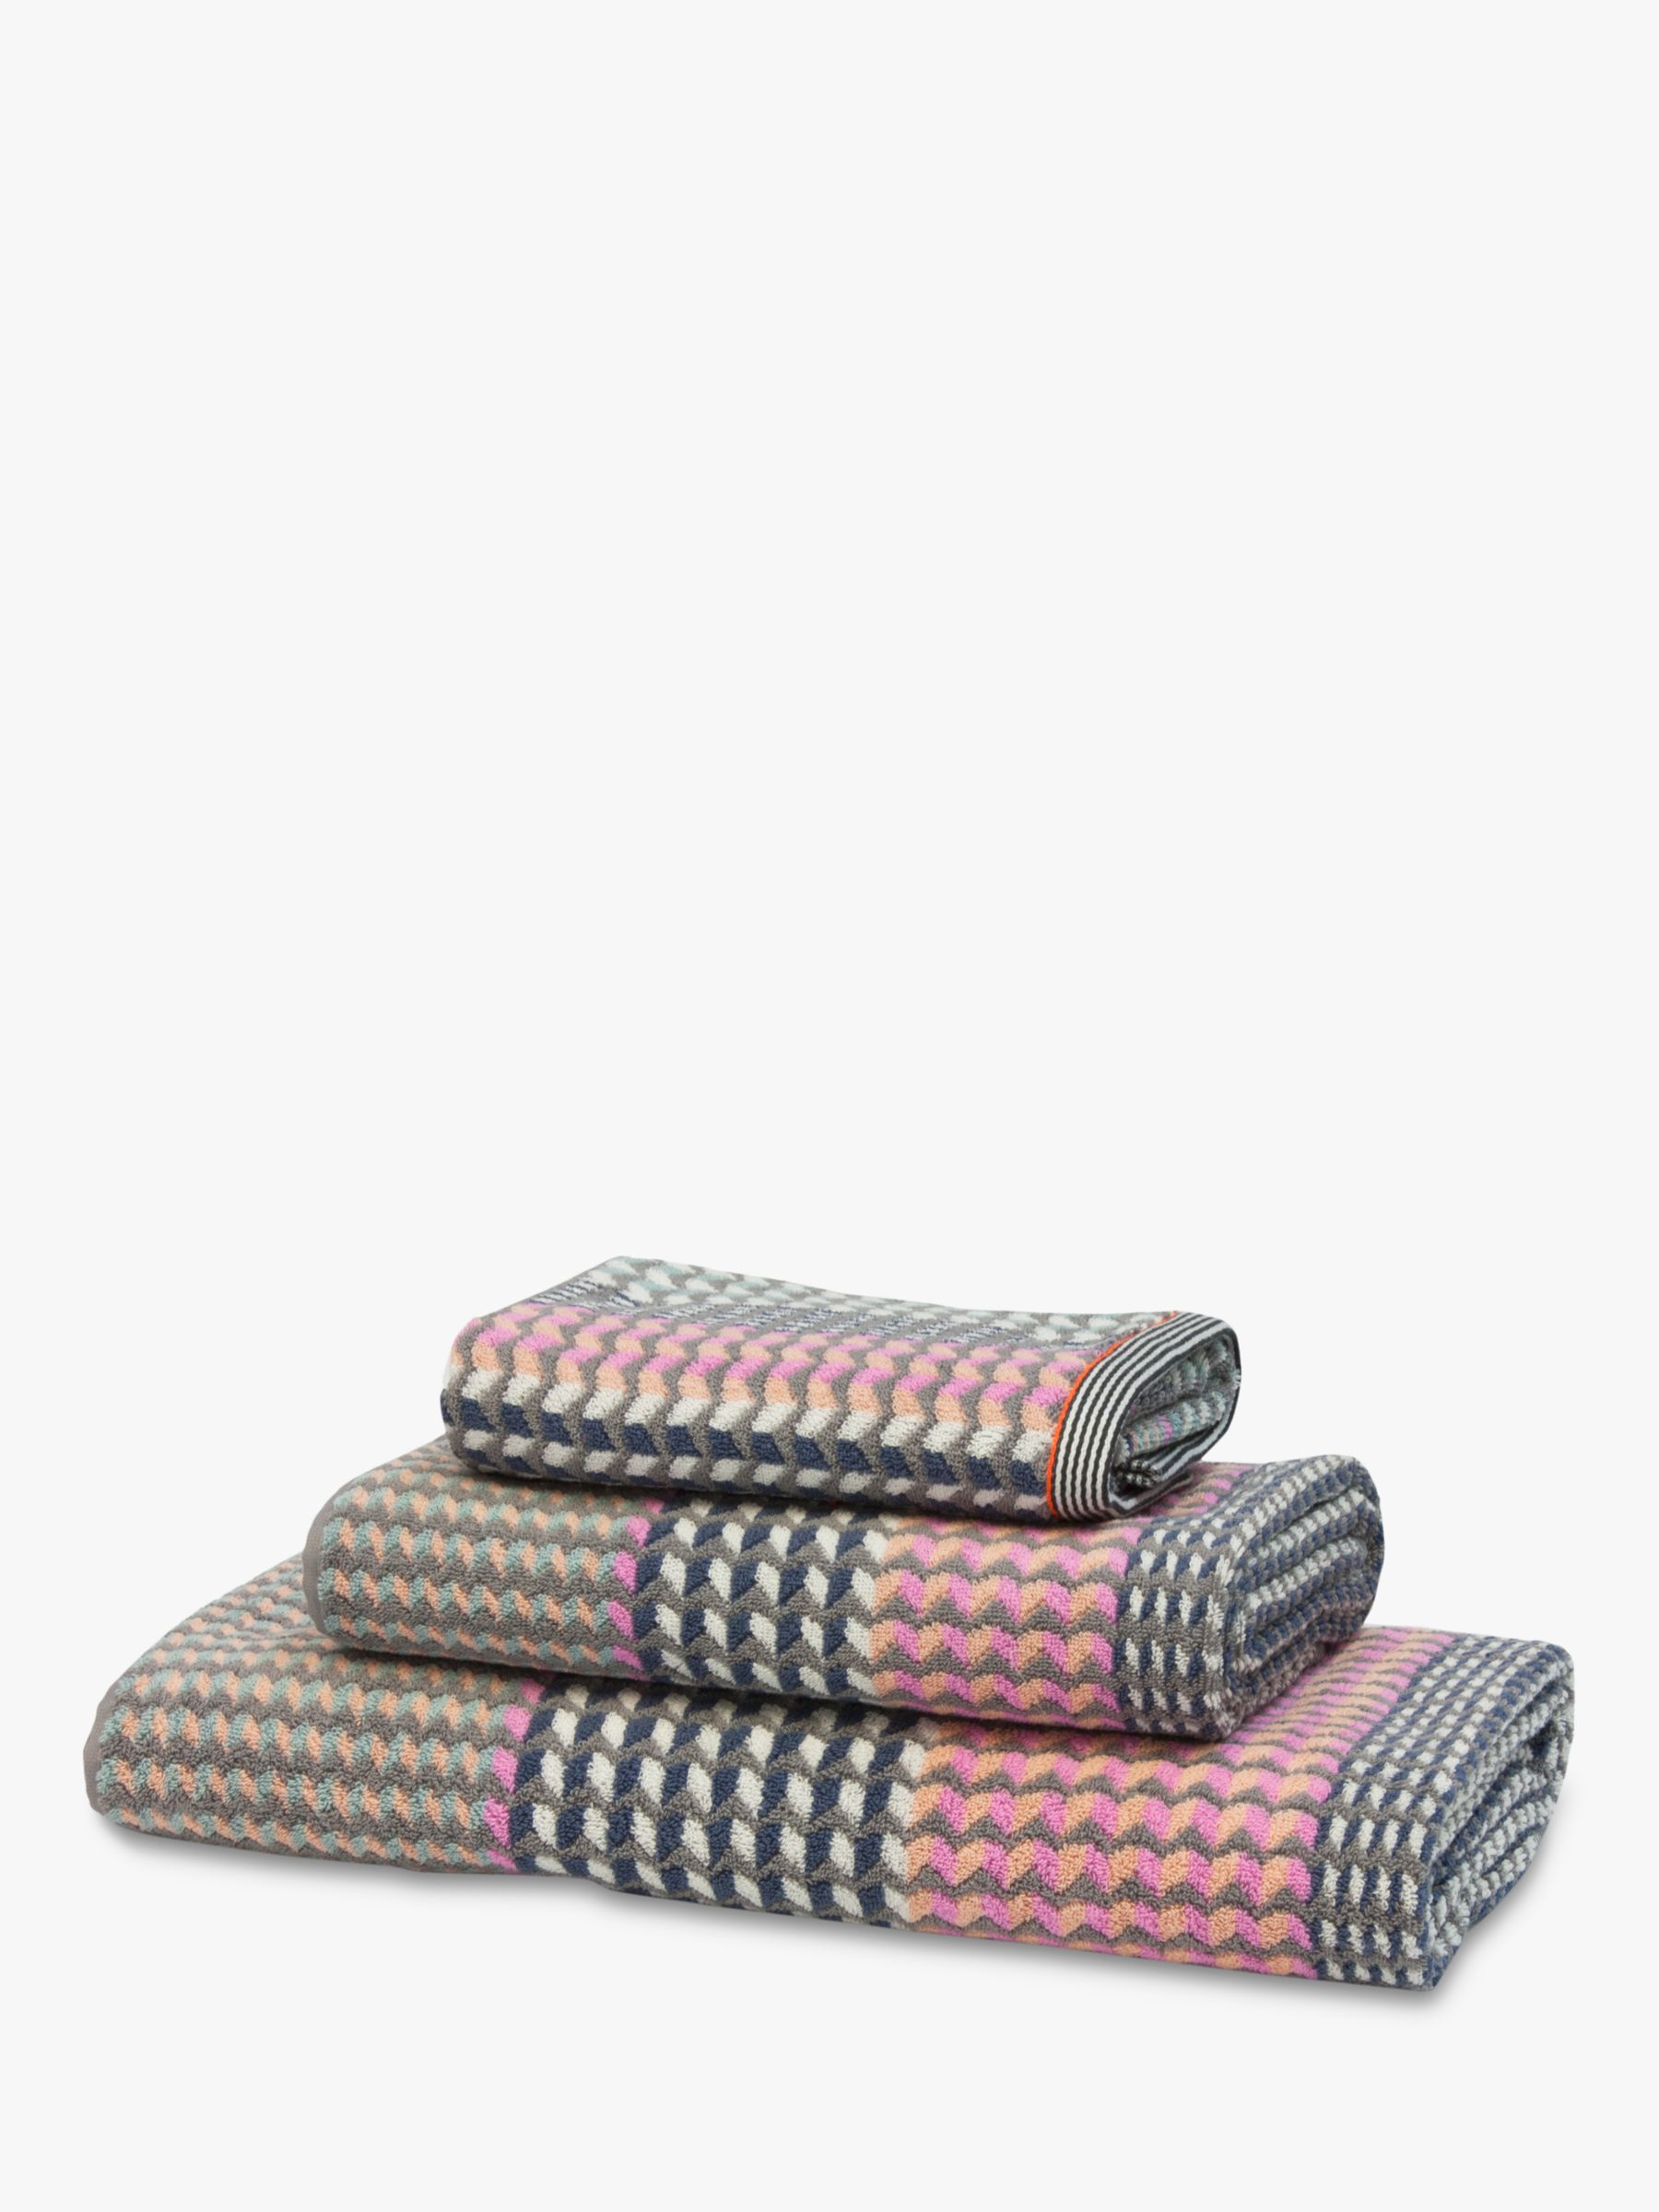 Margo Selby Margo Selby Camber Towels, Multi